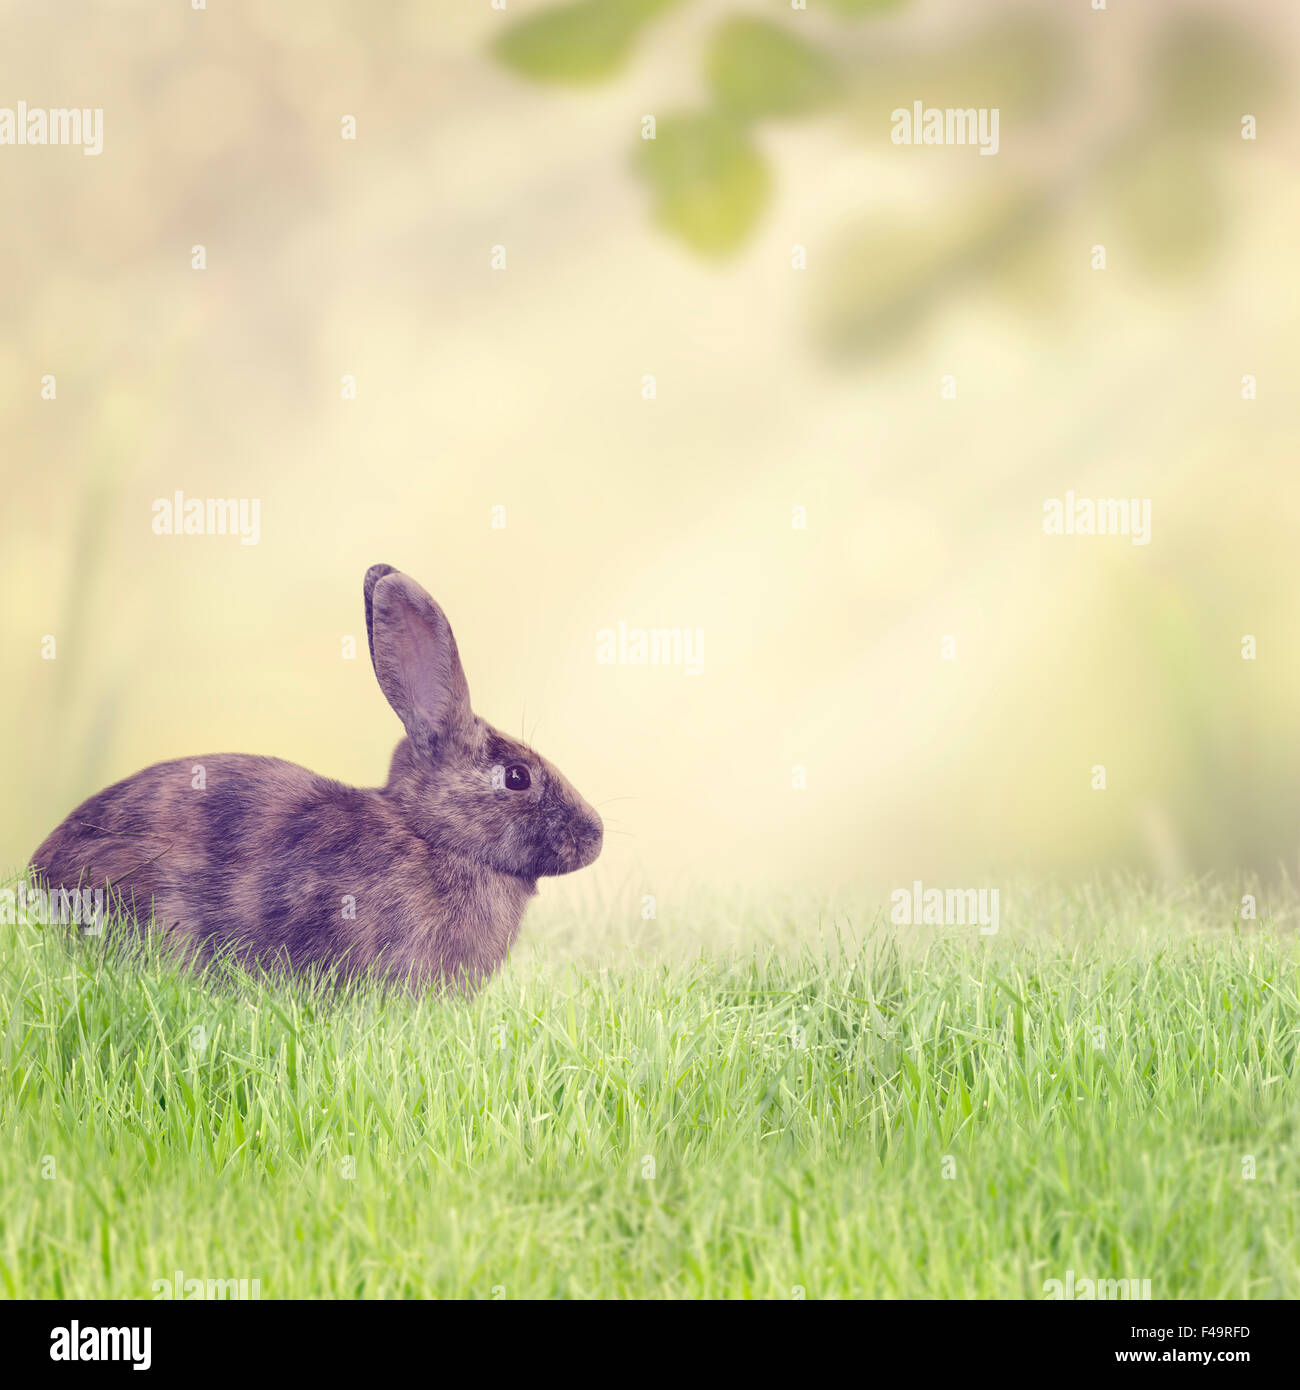 Rabbit Sitting in the Grass - Stock Image